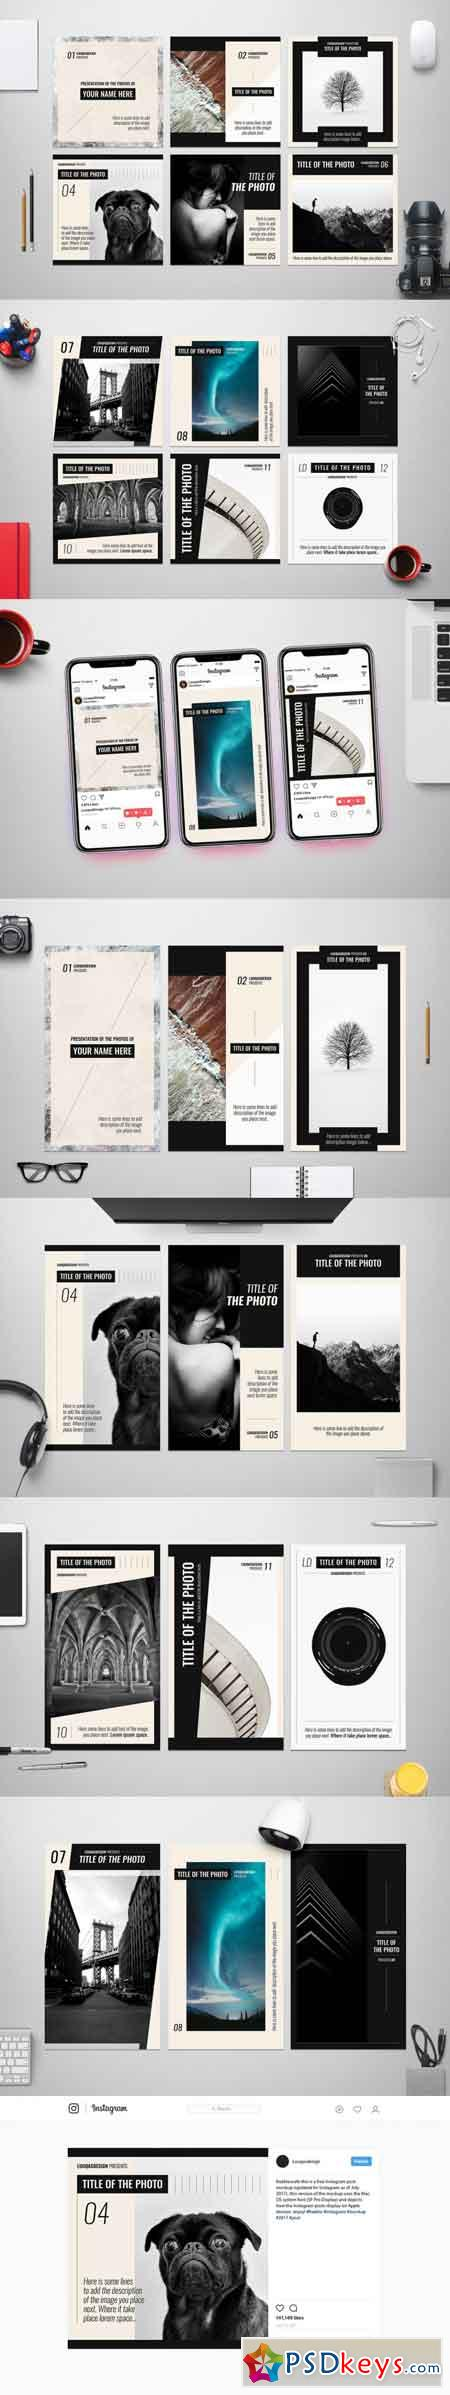 Photography Social Media Pack Template 3465488